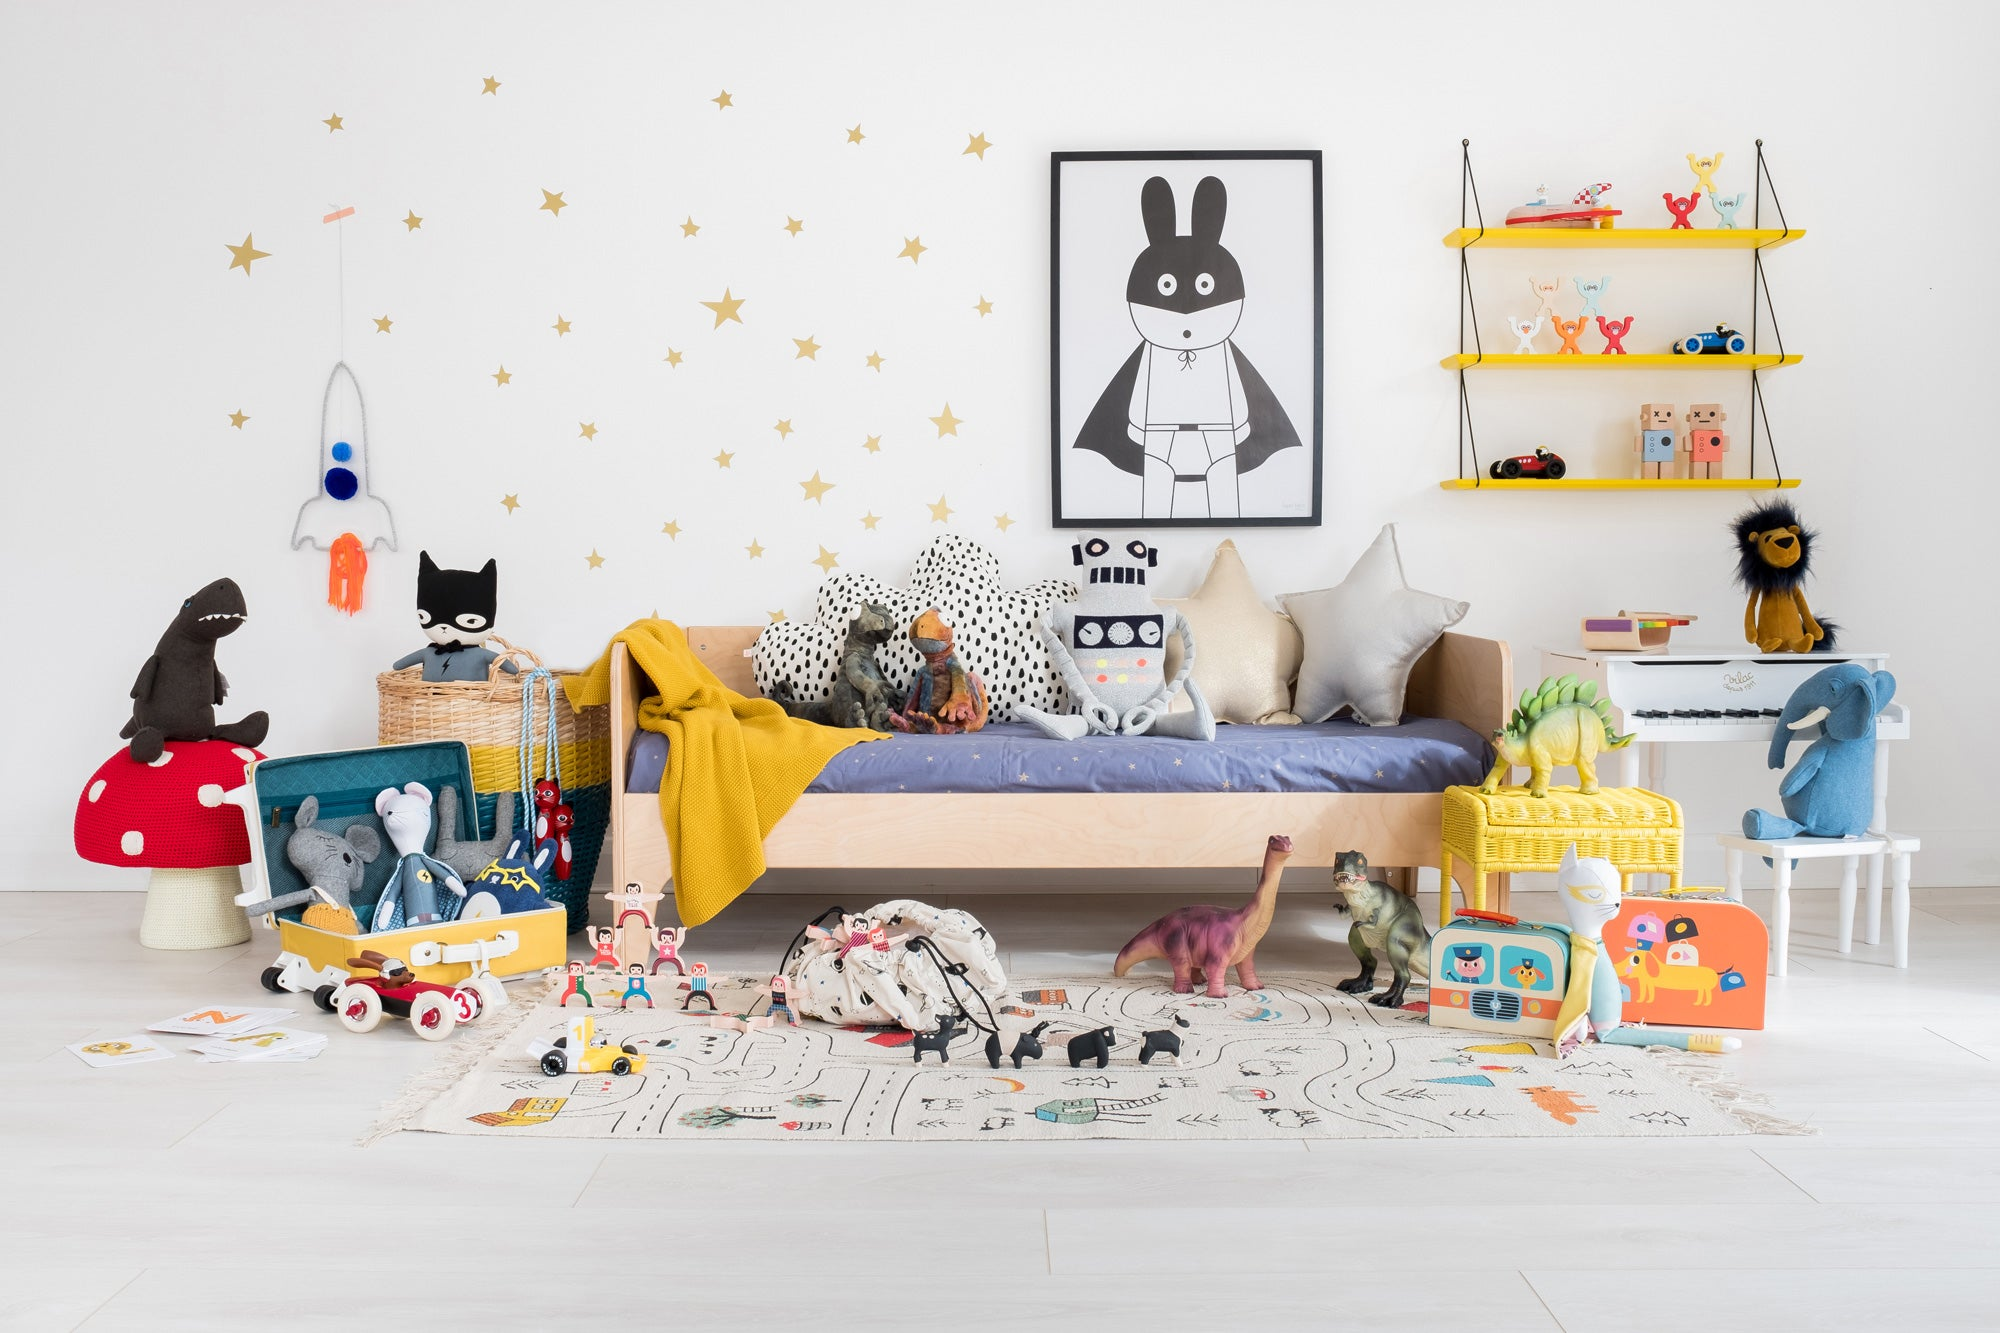 Spaceships and Superheroes Children's Bedroom by Bobby Rabbit.